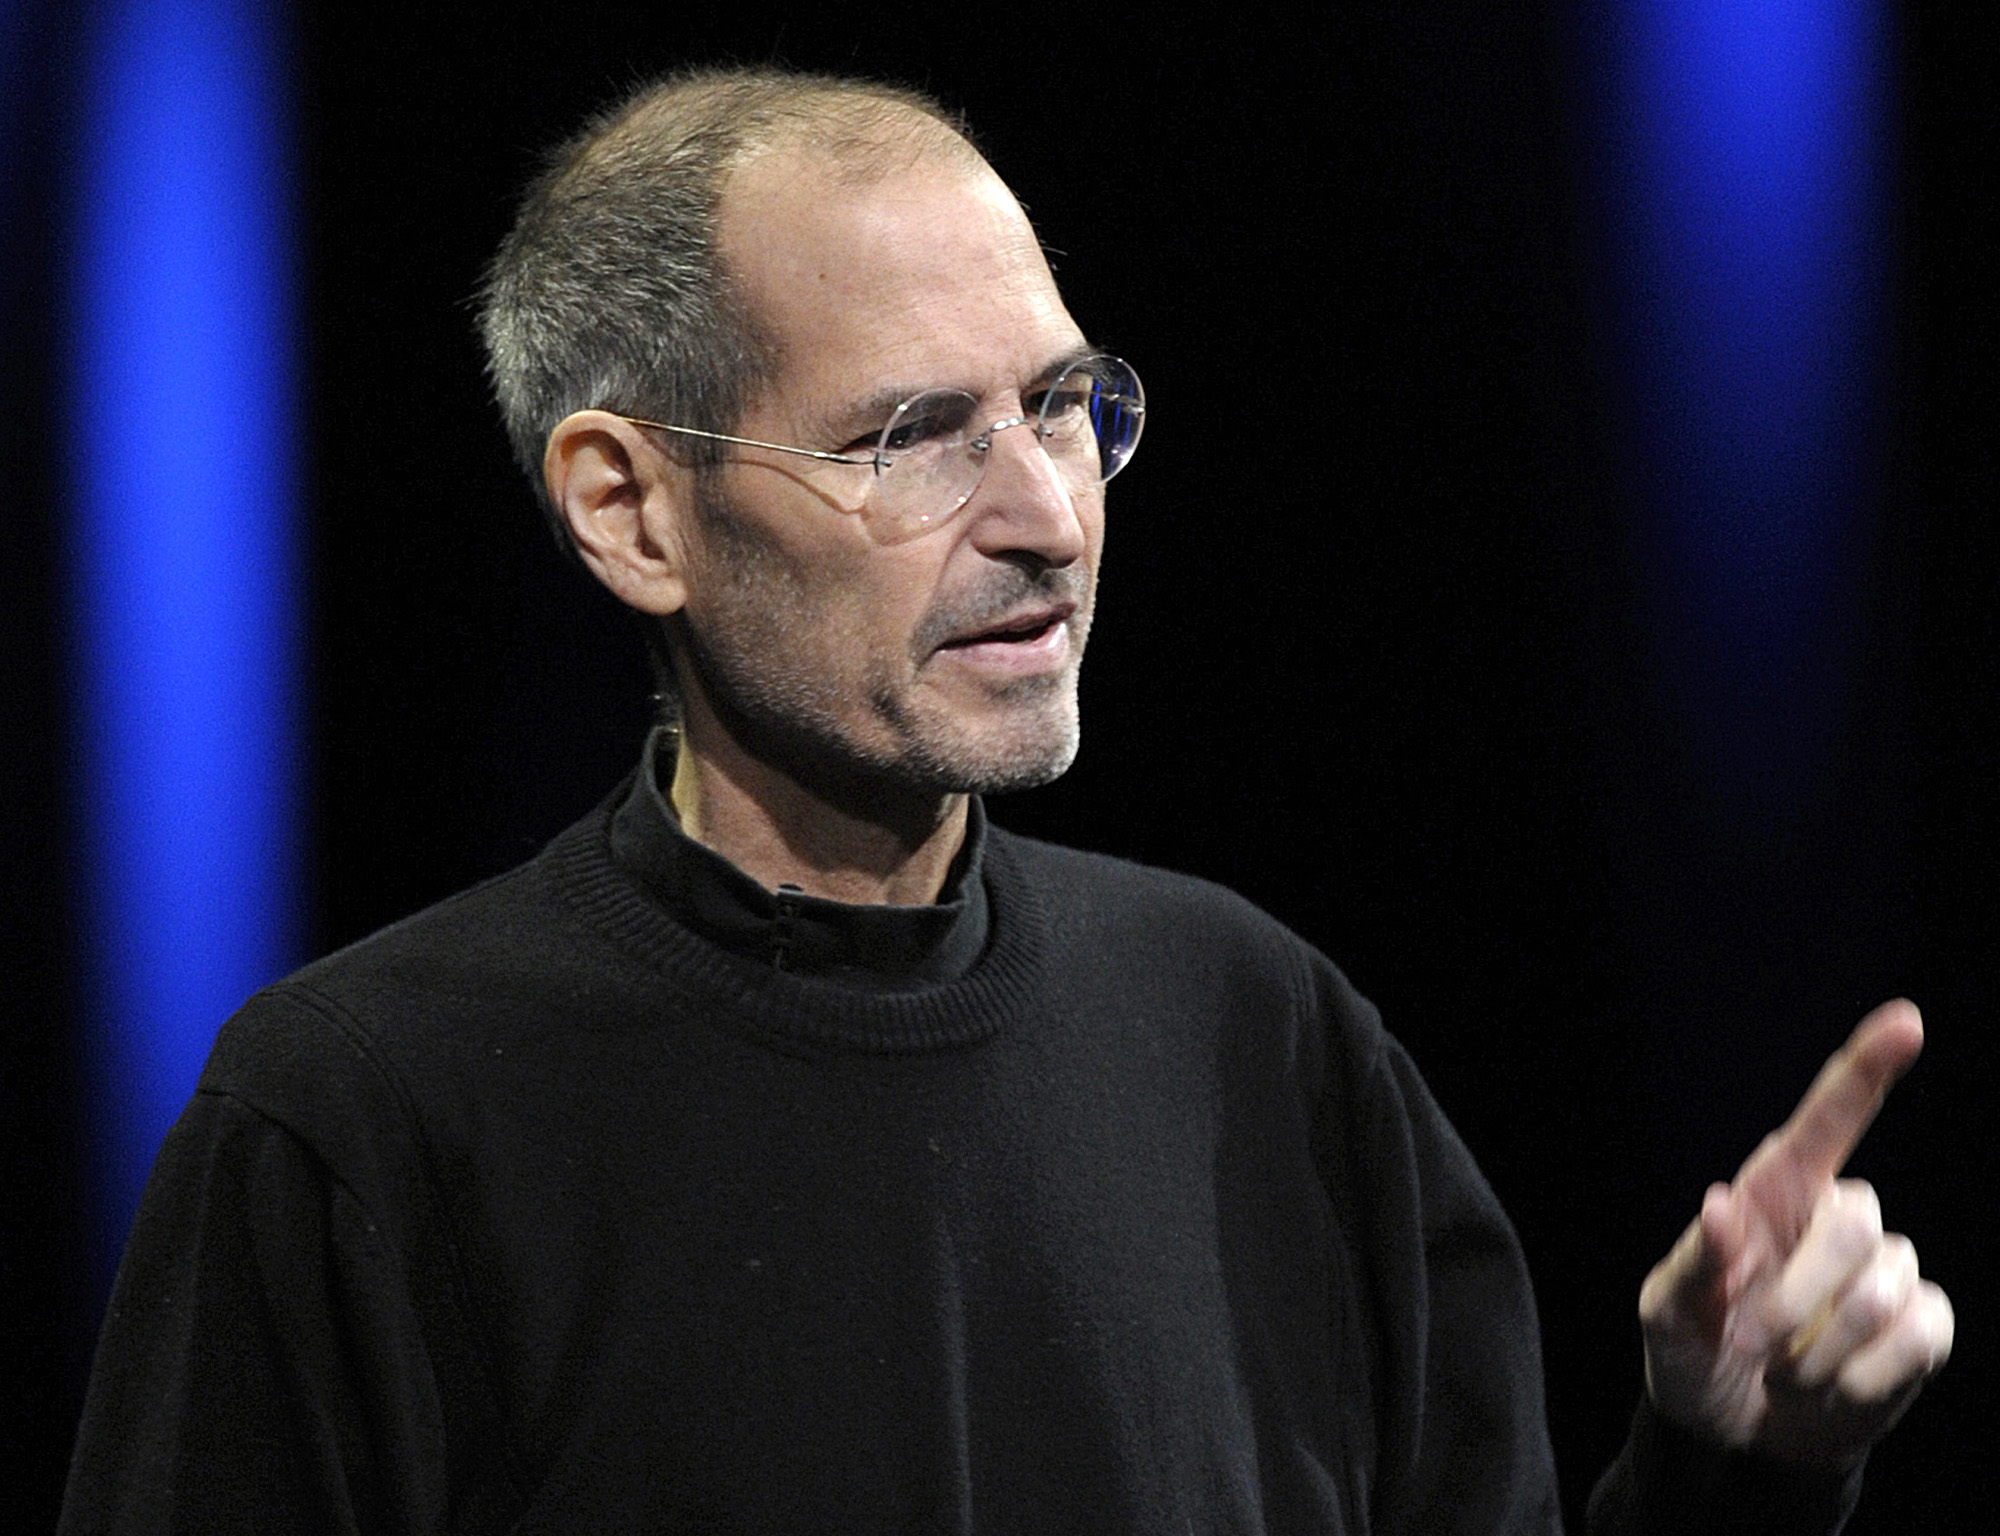 Steve Jobs at the Apple Worldwide Developers Conference 2011 in San Francisco on June 6, 2011.